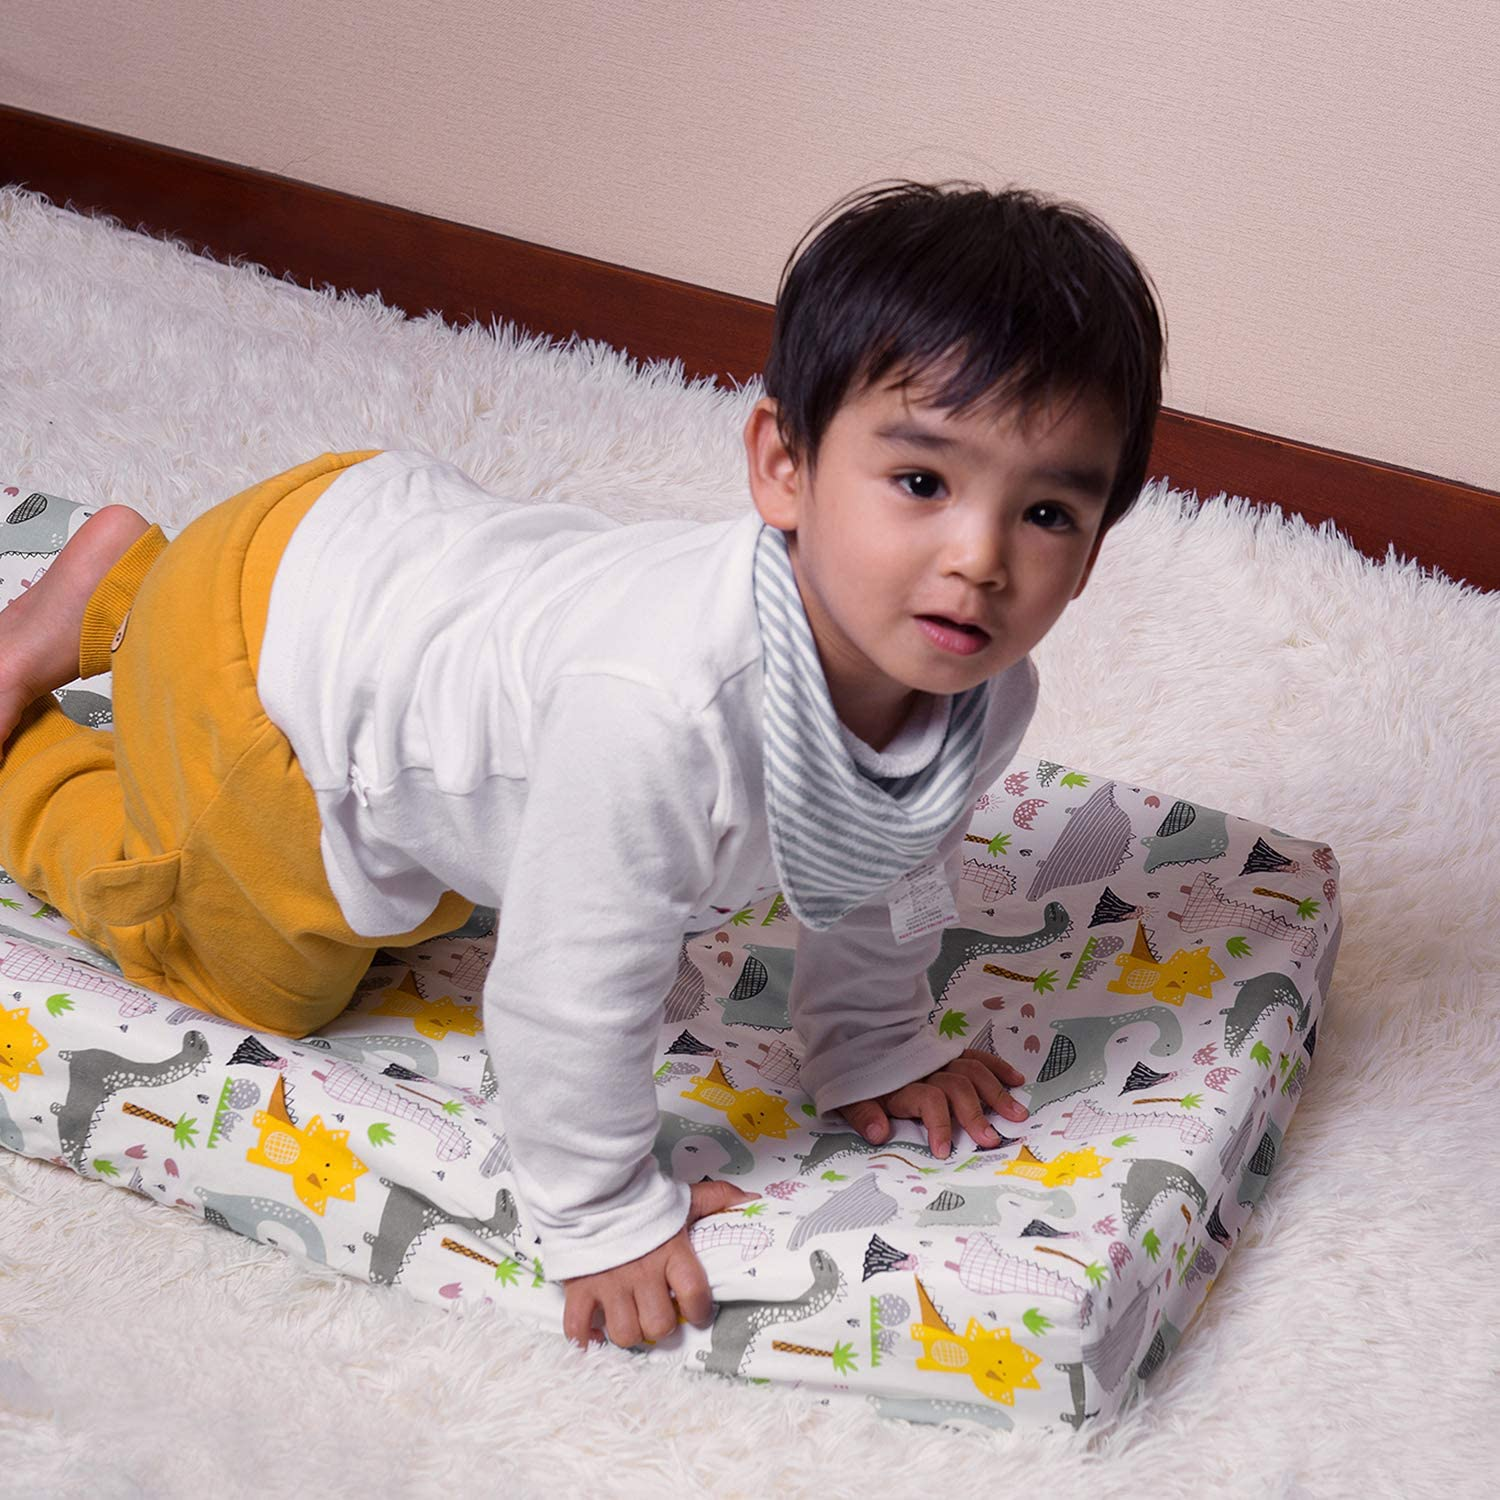 ALVABABY Cradle Mattress 100/% Organic Cotton Soft and Light Baby Changing Pad Cover for Boys and Girls 2TWCZ05